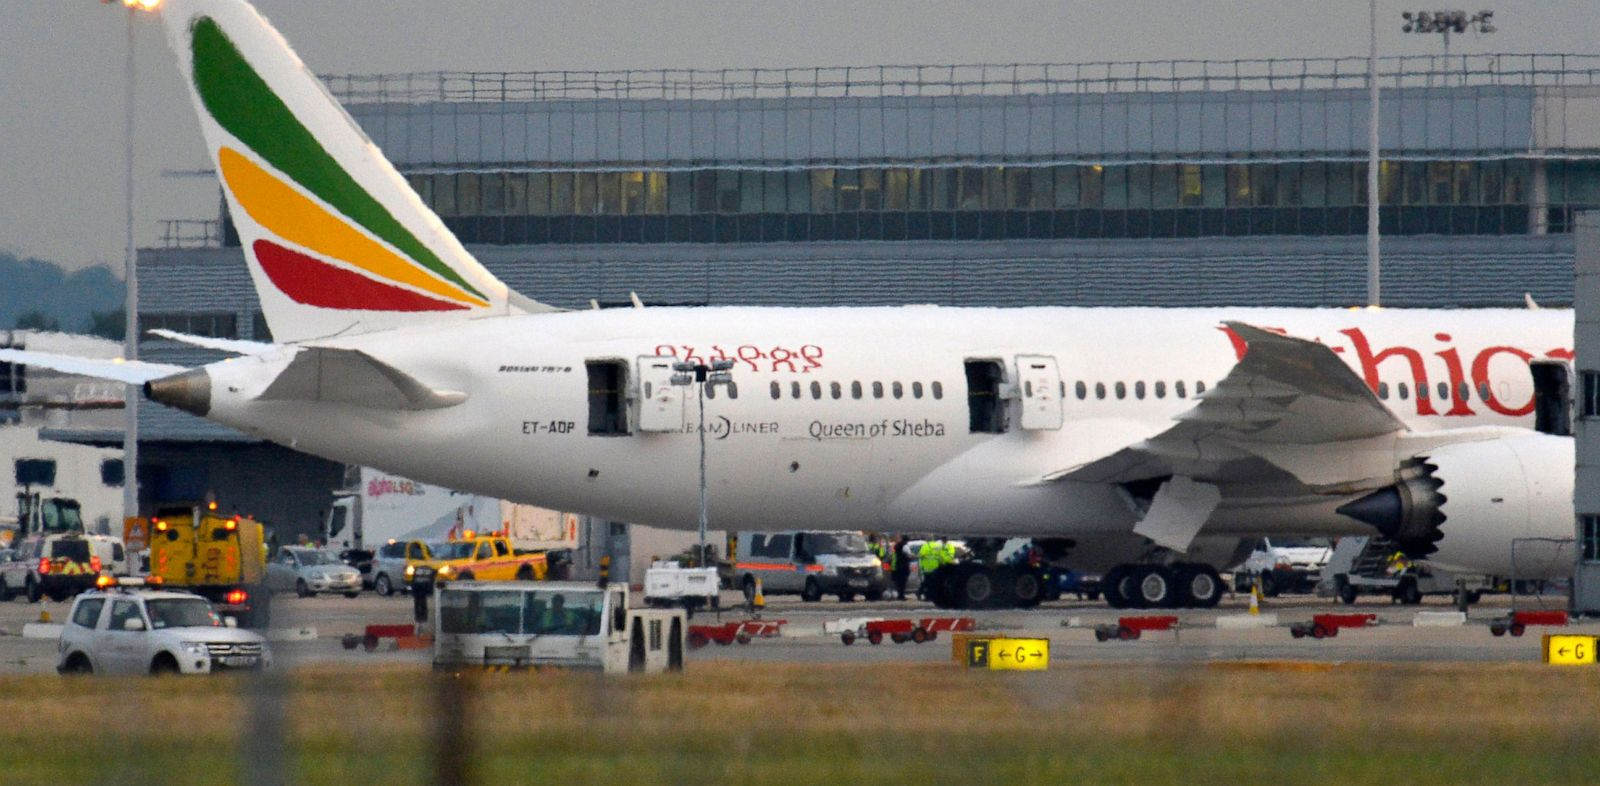 PHOTO: Emergency services attend to a Boeing 787 Dreamliner, operated by Ethiopian Airlines